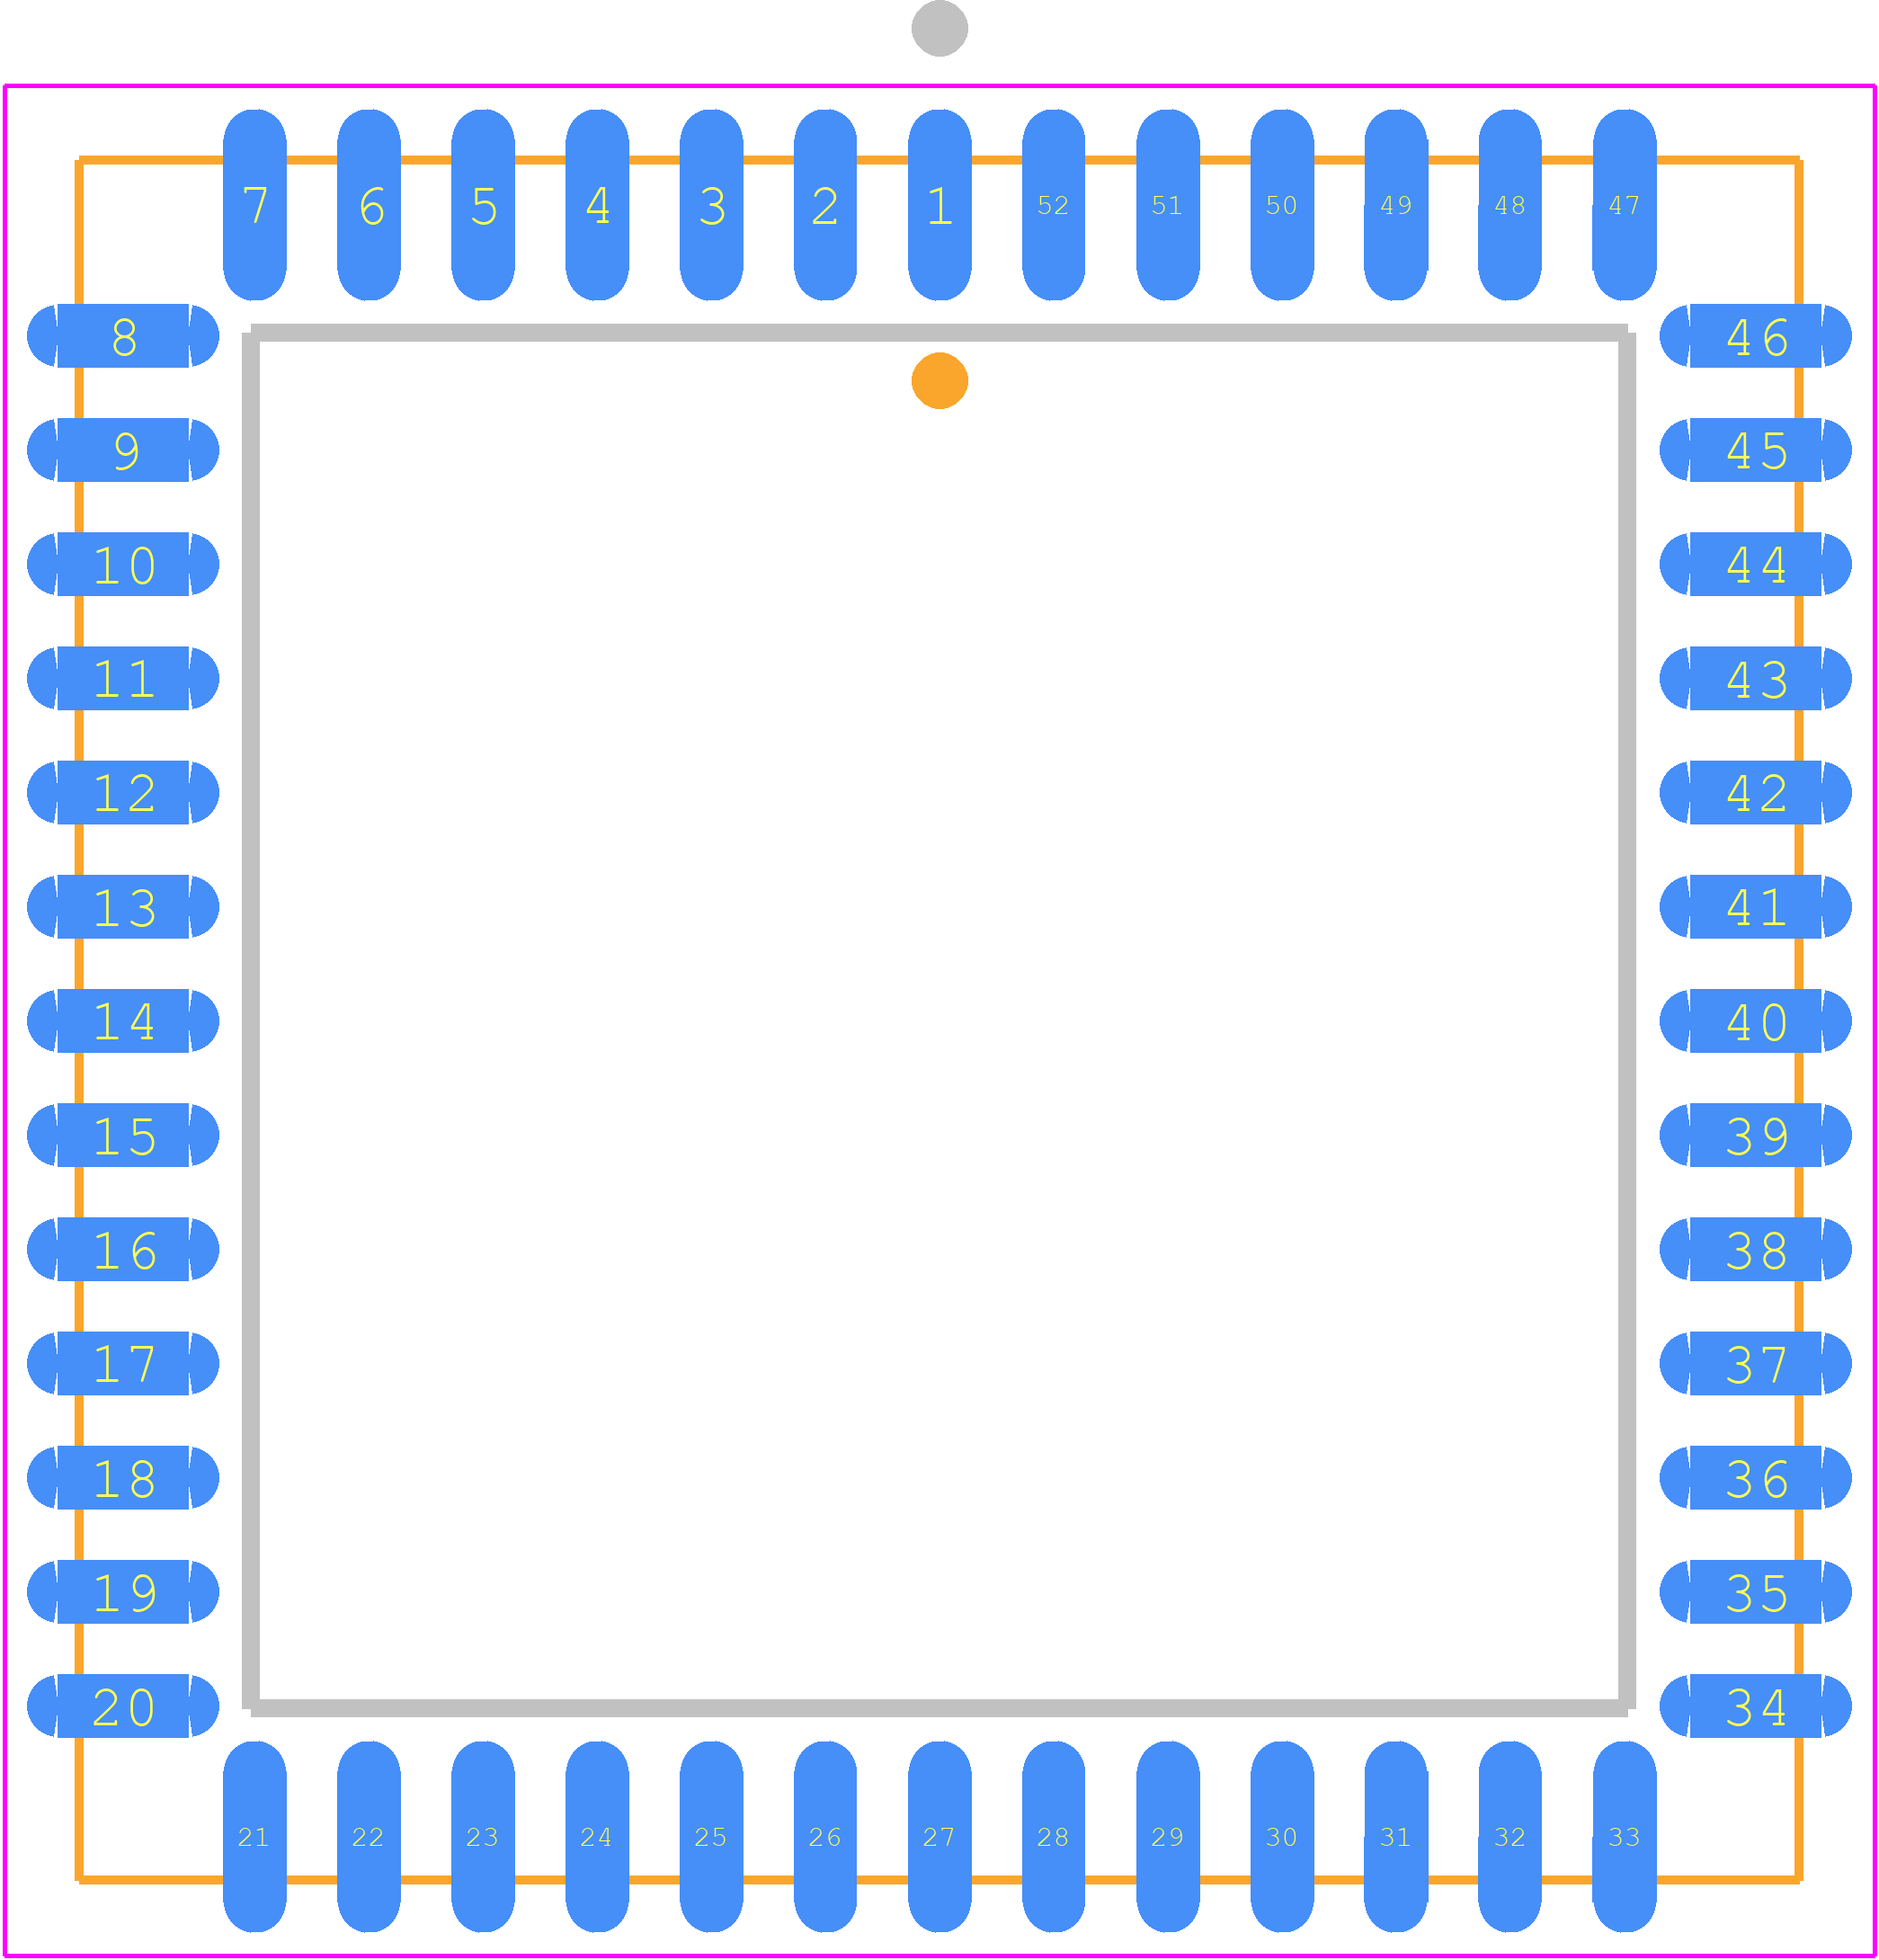 PCB footprint for IDT, Integrated Device Technology Inc 7140SA100J8 - Plastic Leaded Chip Carrier